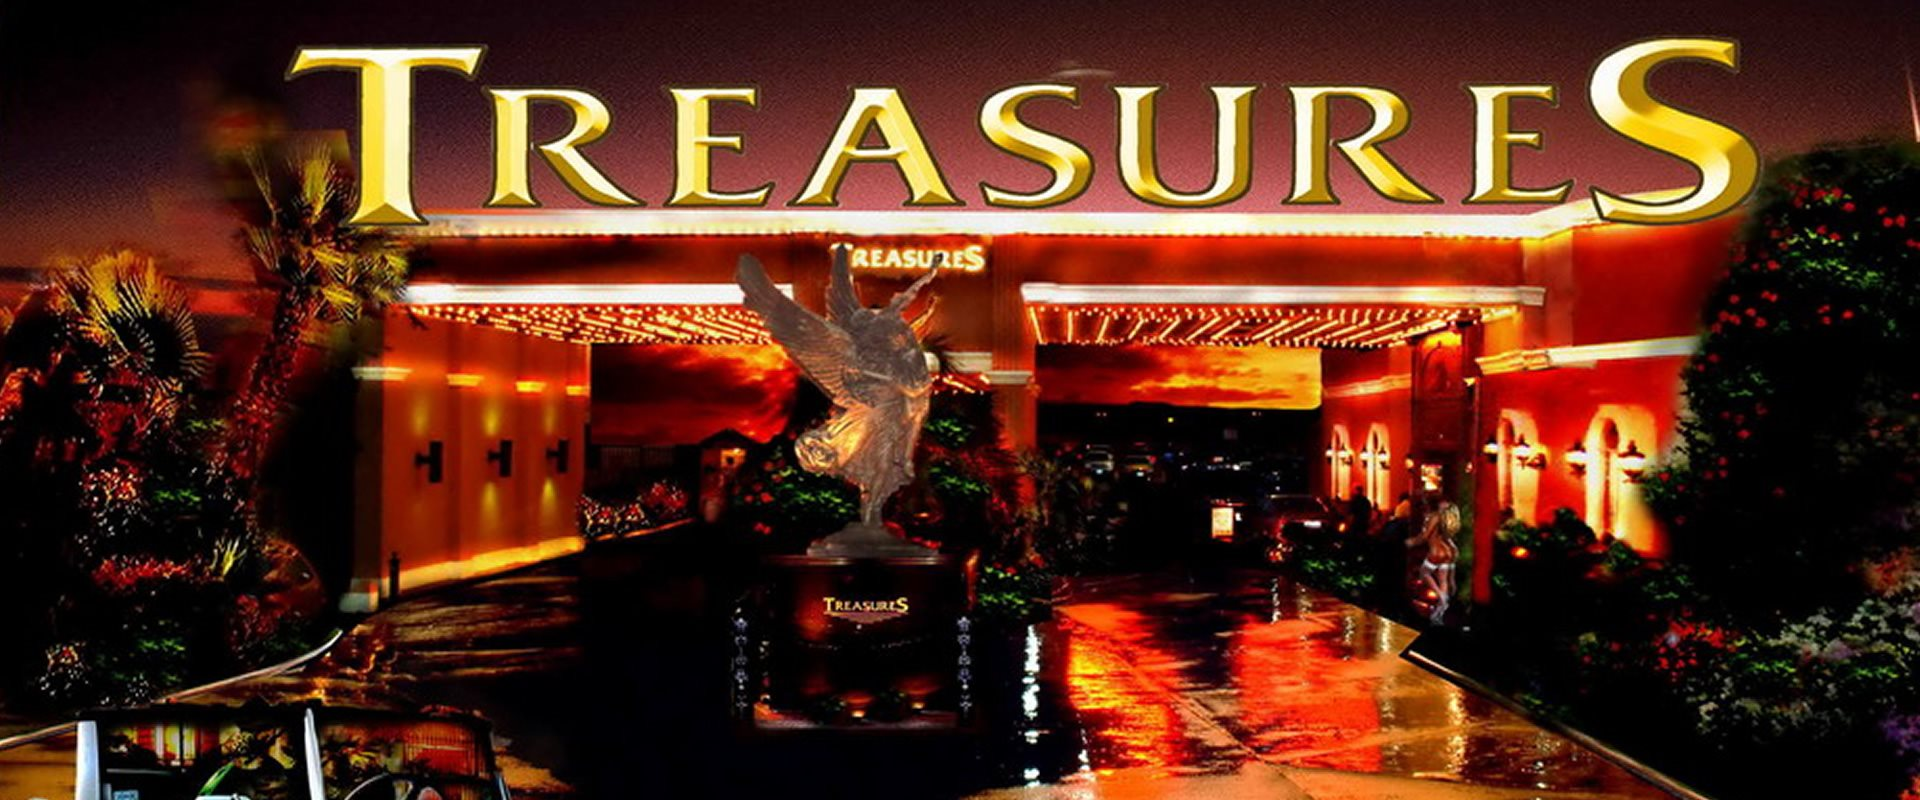 Treasures strip club Houston Texas